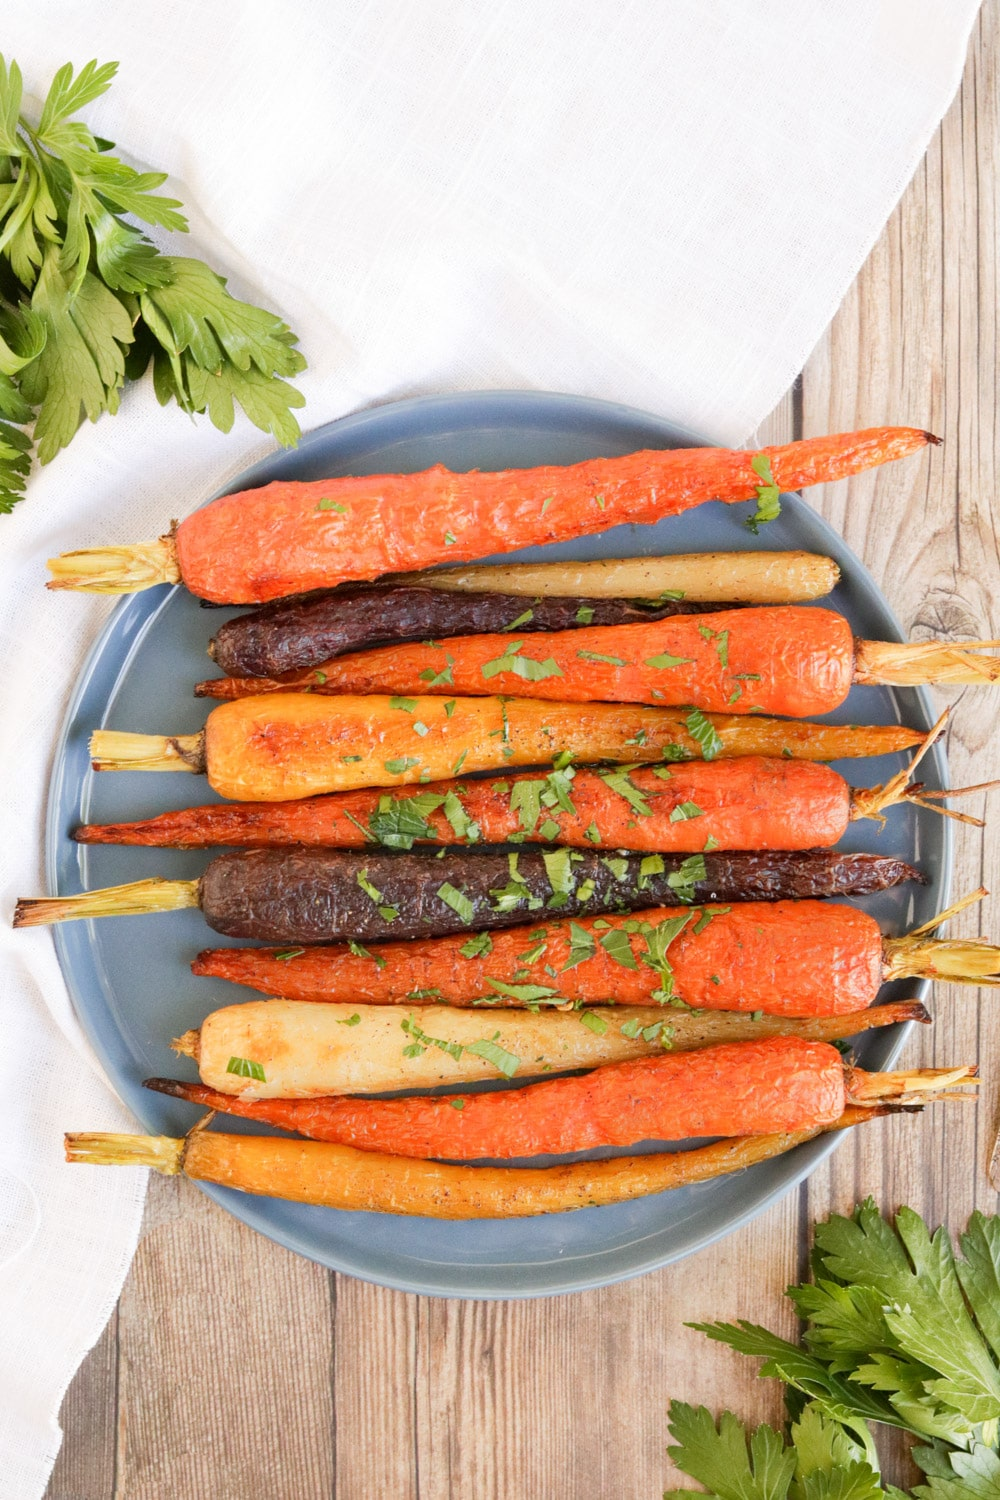 Whole Roasted Rainbow Carrots: Whole Roasted Rainbow Carrots on a blue plate with a white linen.